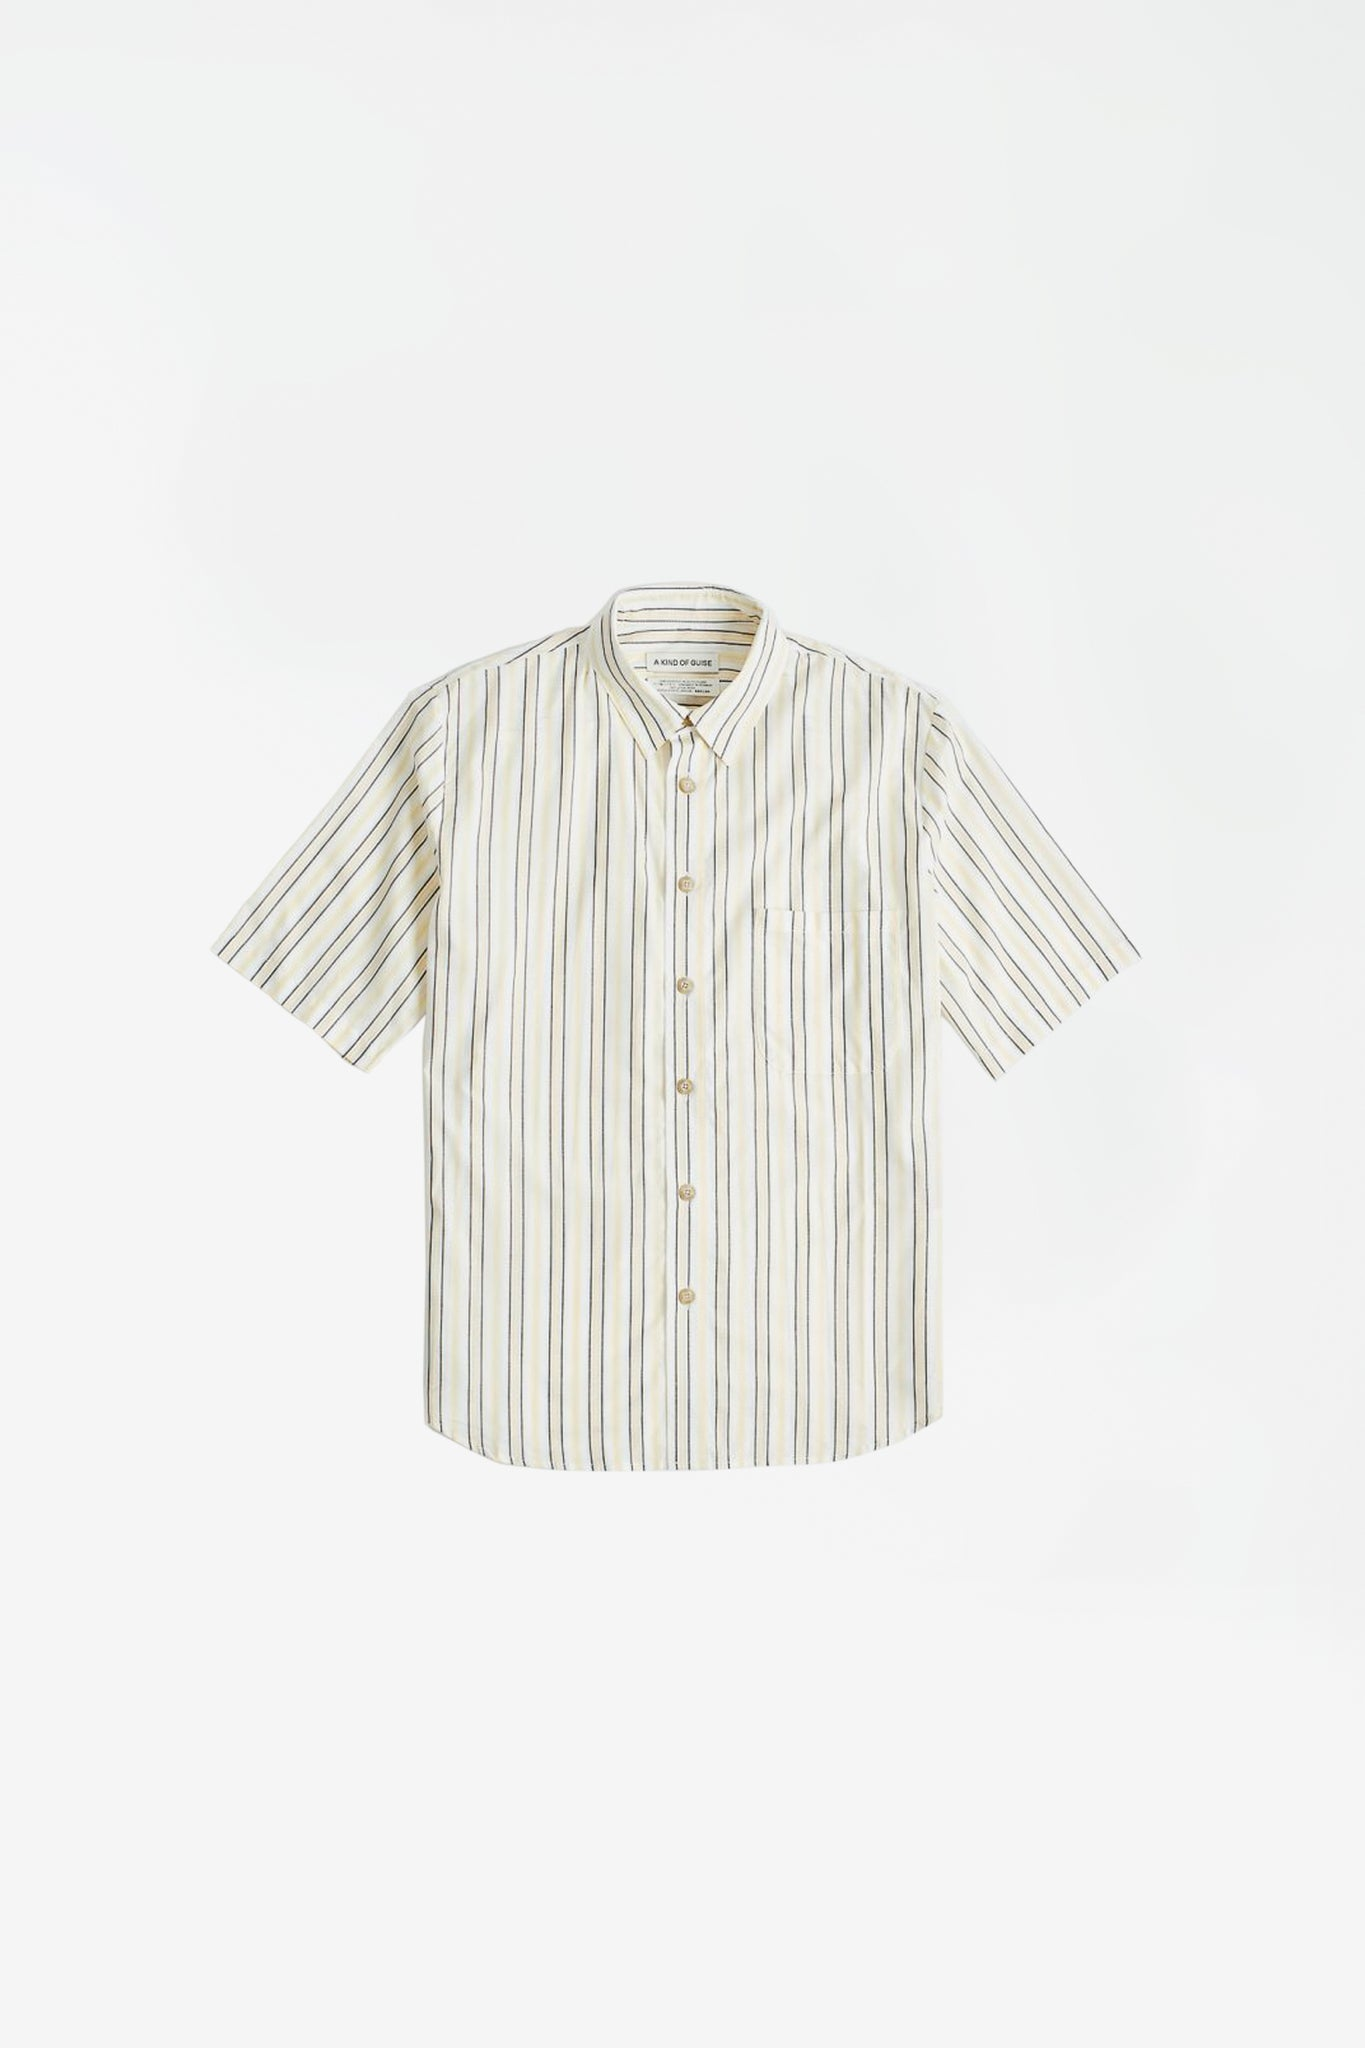 Banepa Shirt yellow stripe